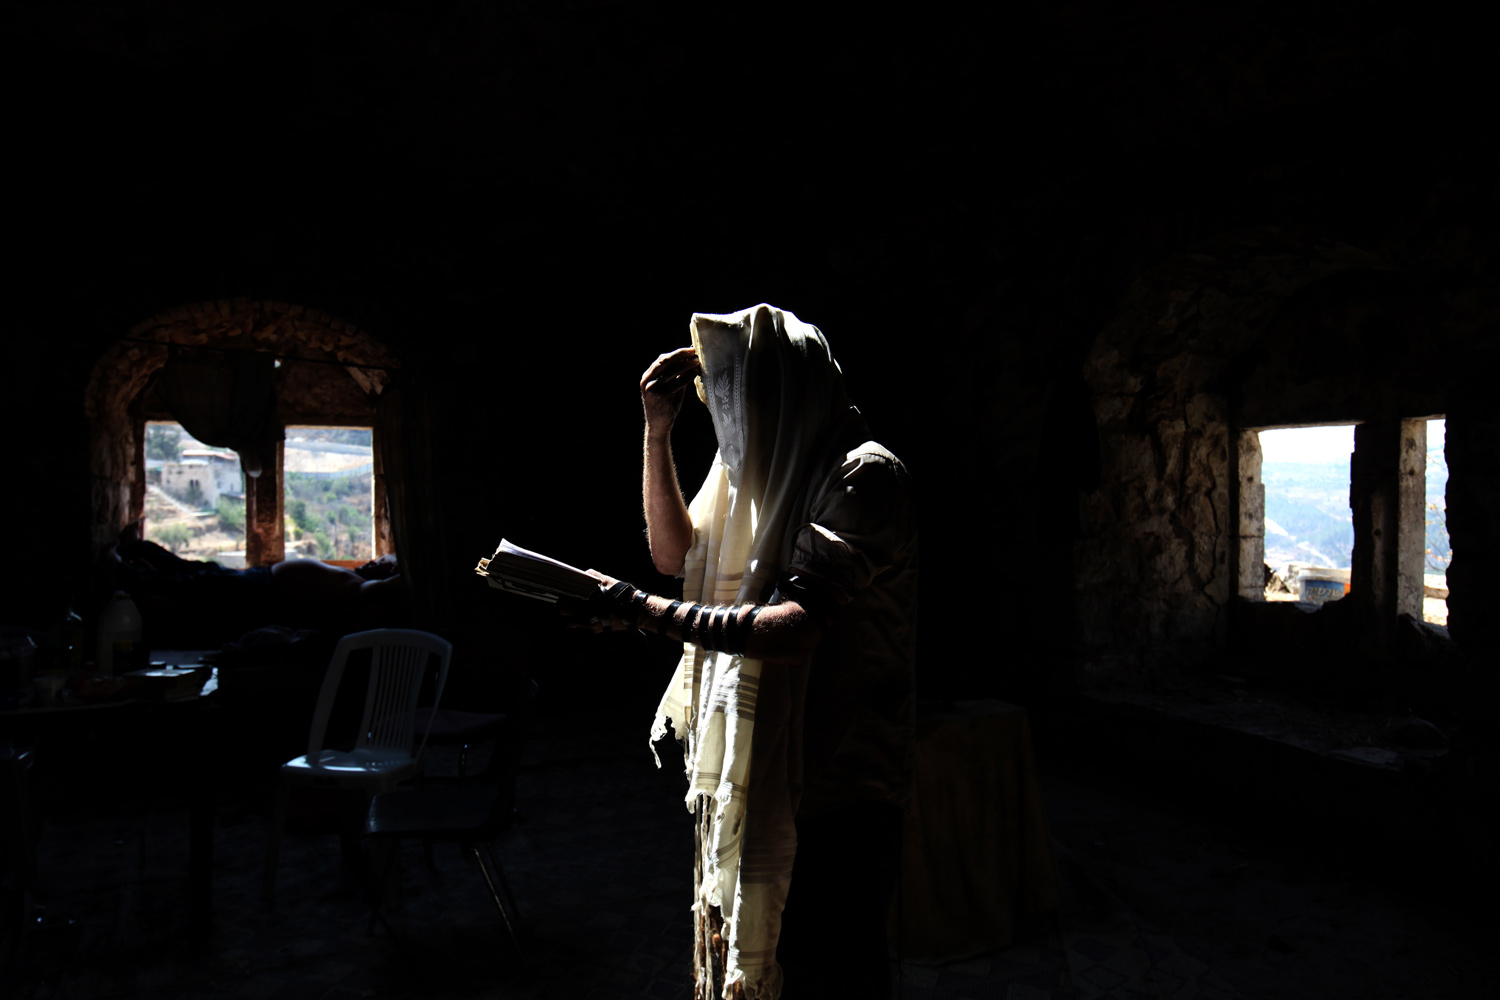 August 17, 2011. A Jewish Hasidic community member prays in a cave of an old Arab house where they live in Lifta, Jerusalem, Israel.